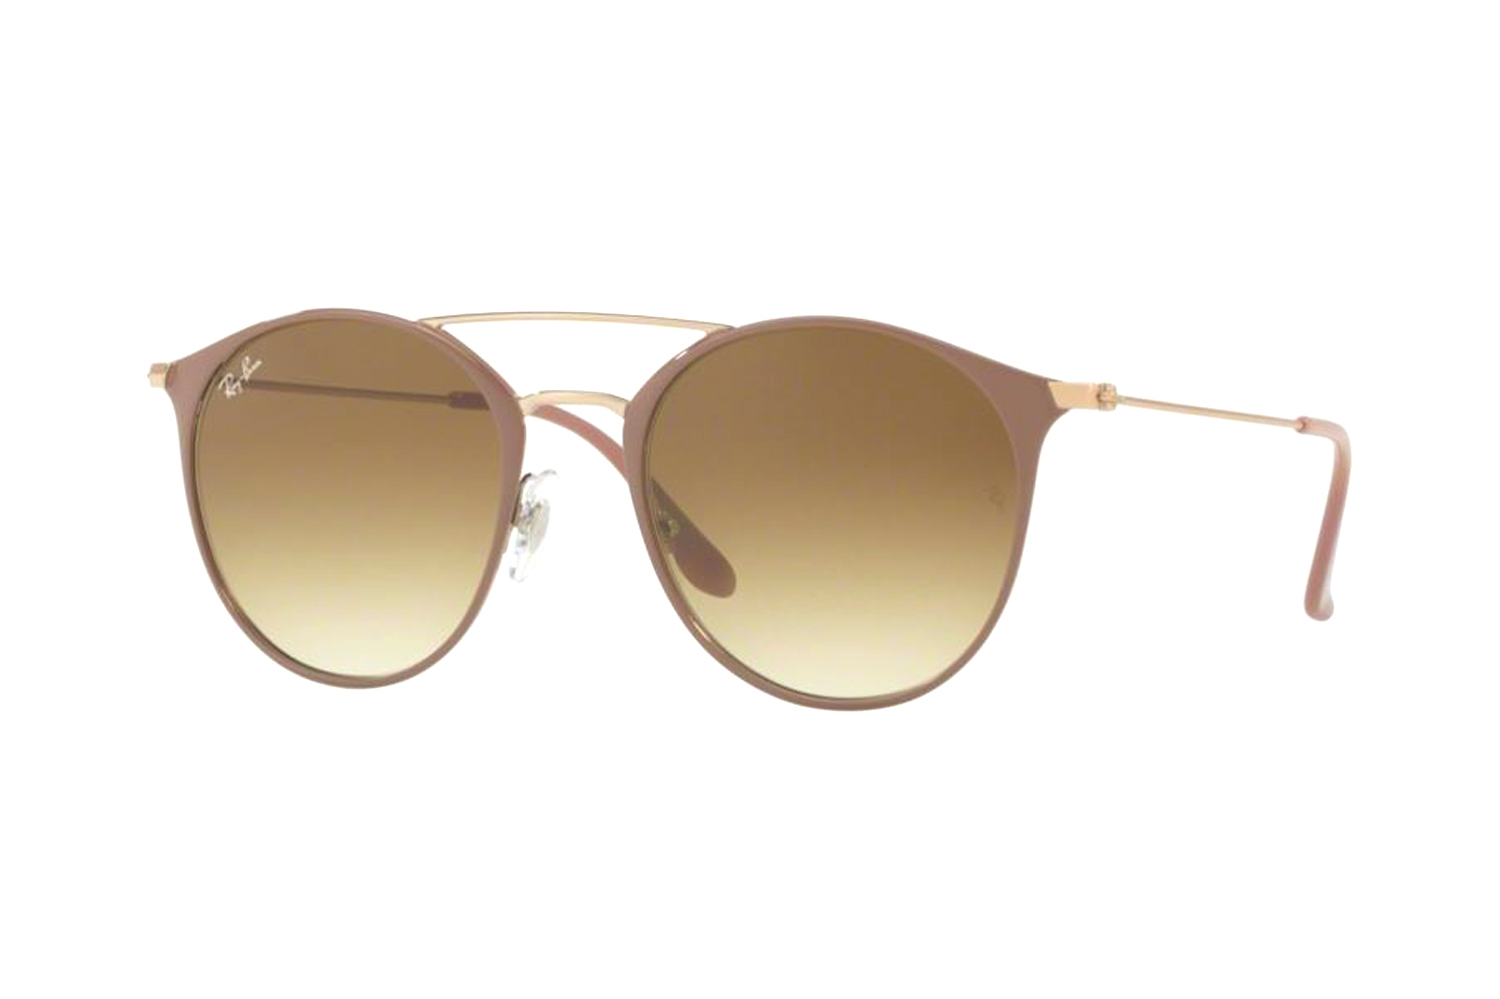 Ray-Ban RB 3546 907151/2N Sonnenbrille in copper top on beige 49/20 sFYuP6JKn